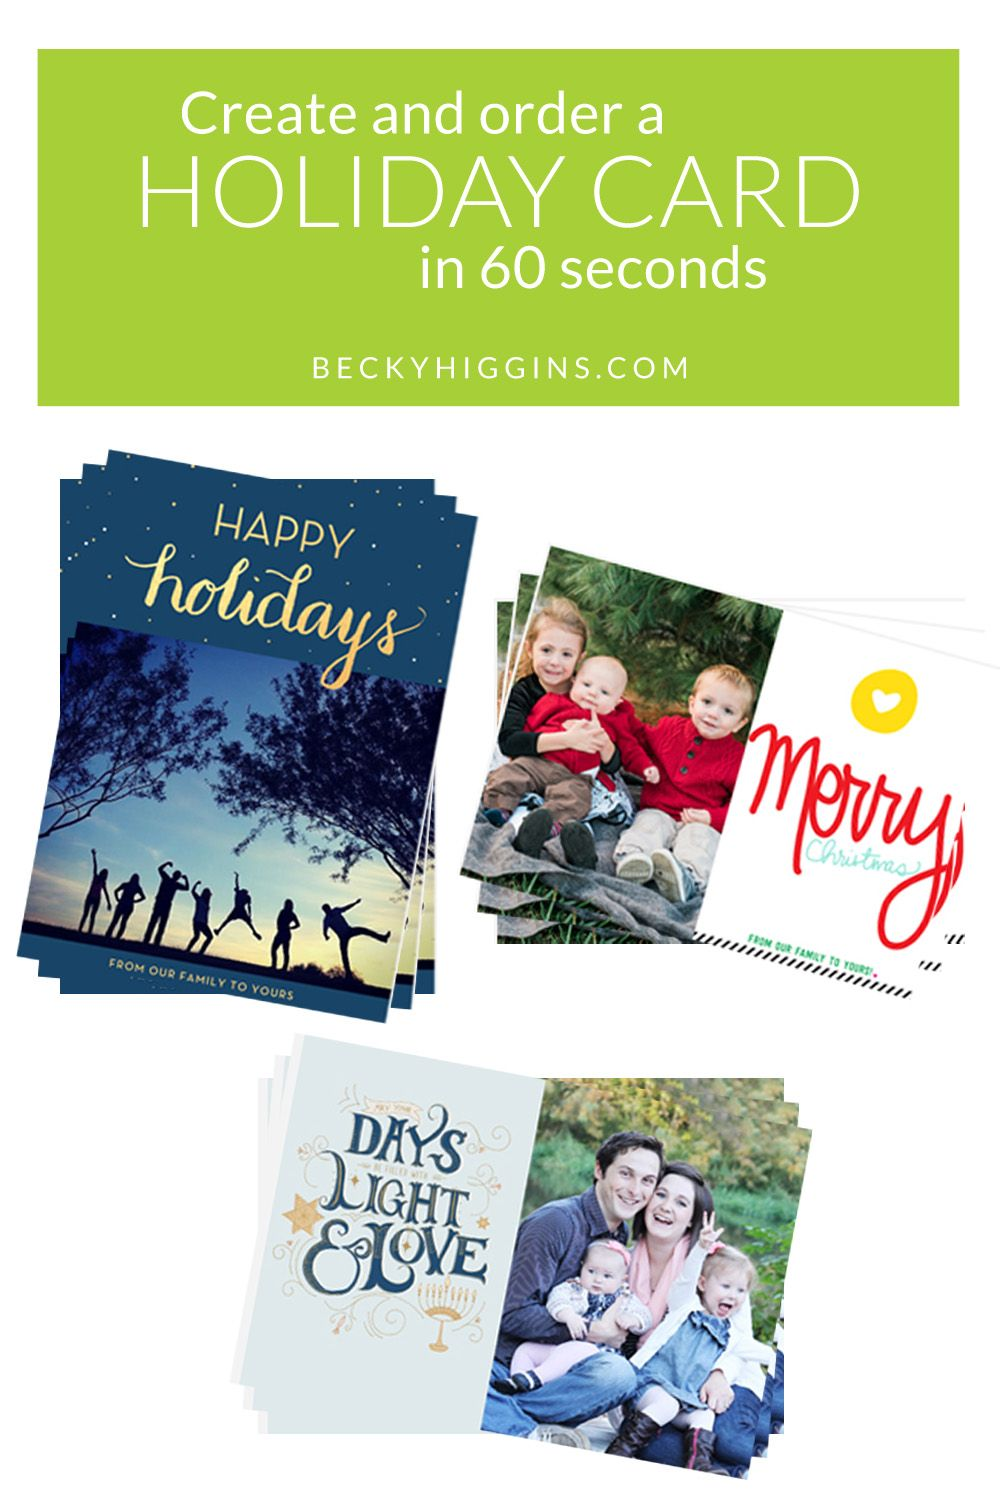 The Project Life App Lets You Create And Order A Holiday Card In